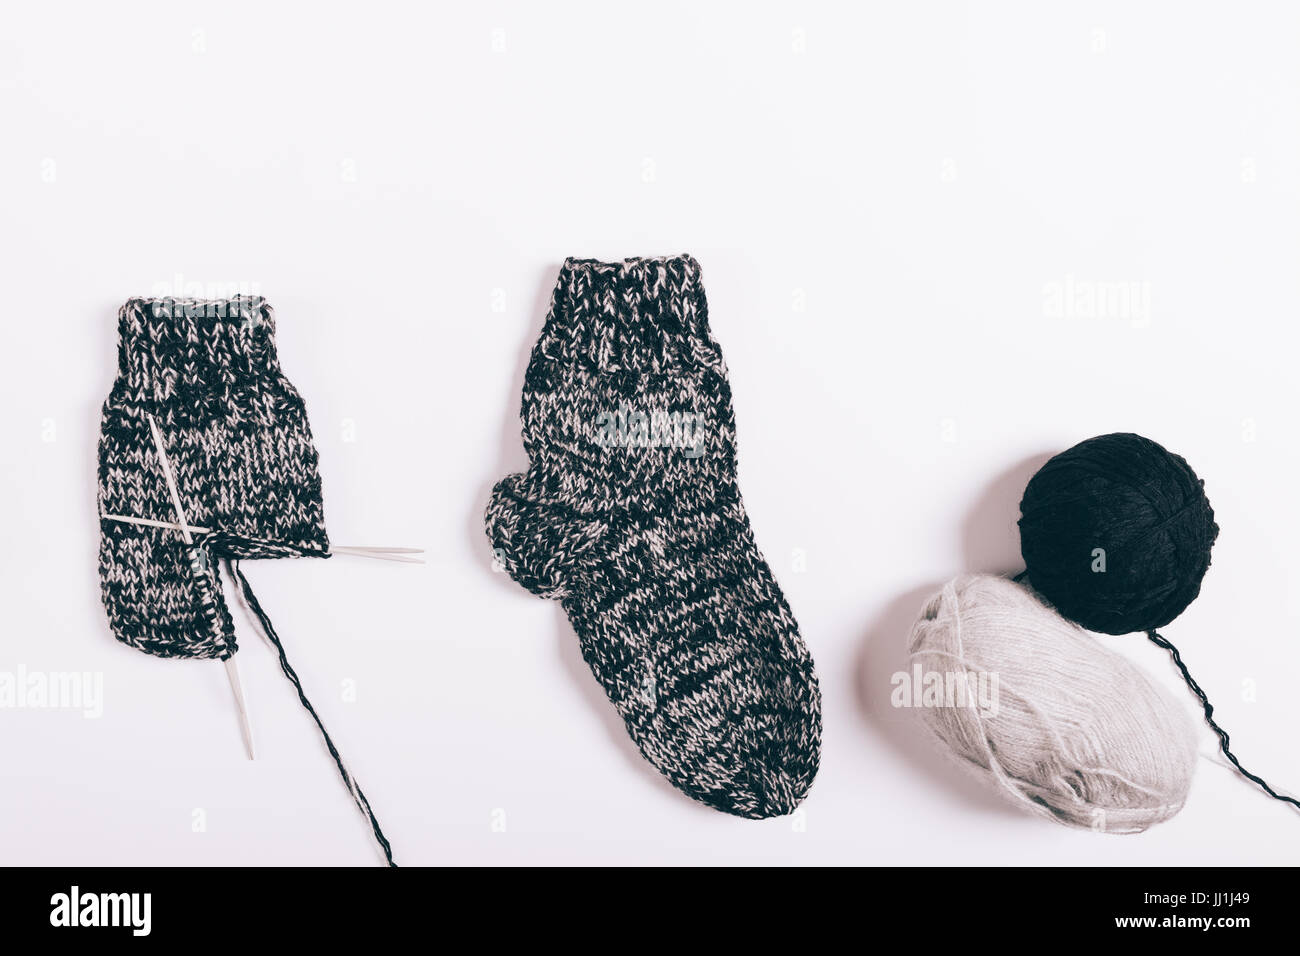 Black wool socks and balls of yarn laying on a white table, top view - Stock Image